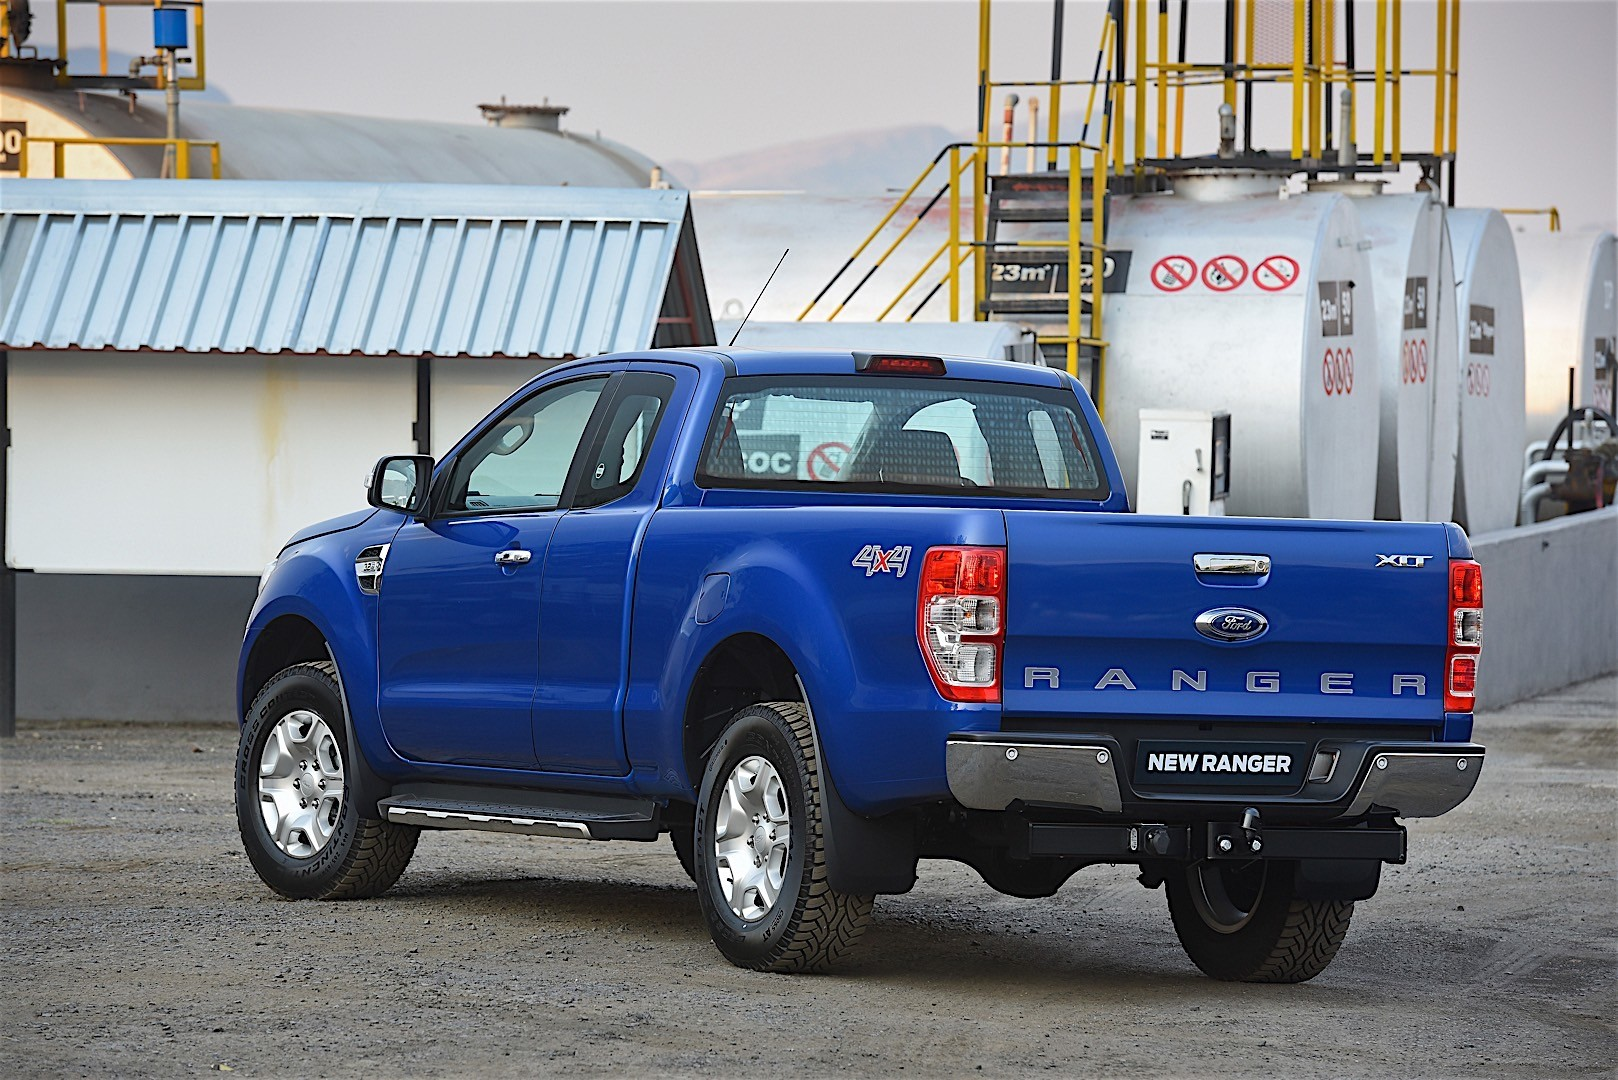 FORD Ranger Super Cab specs & photos - 2015, 2016, 2017, 2018, 2019 - autoevolution